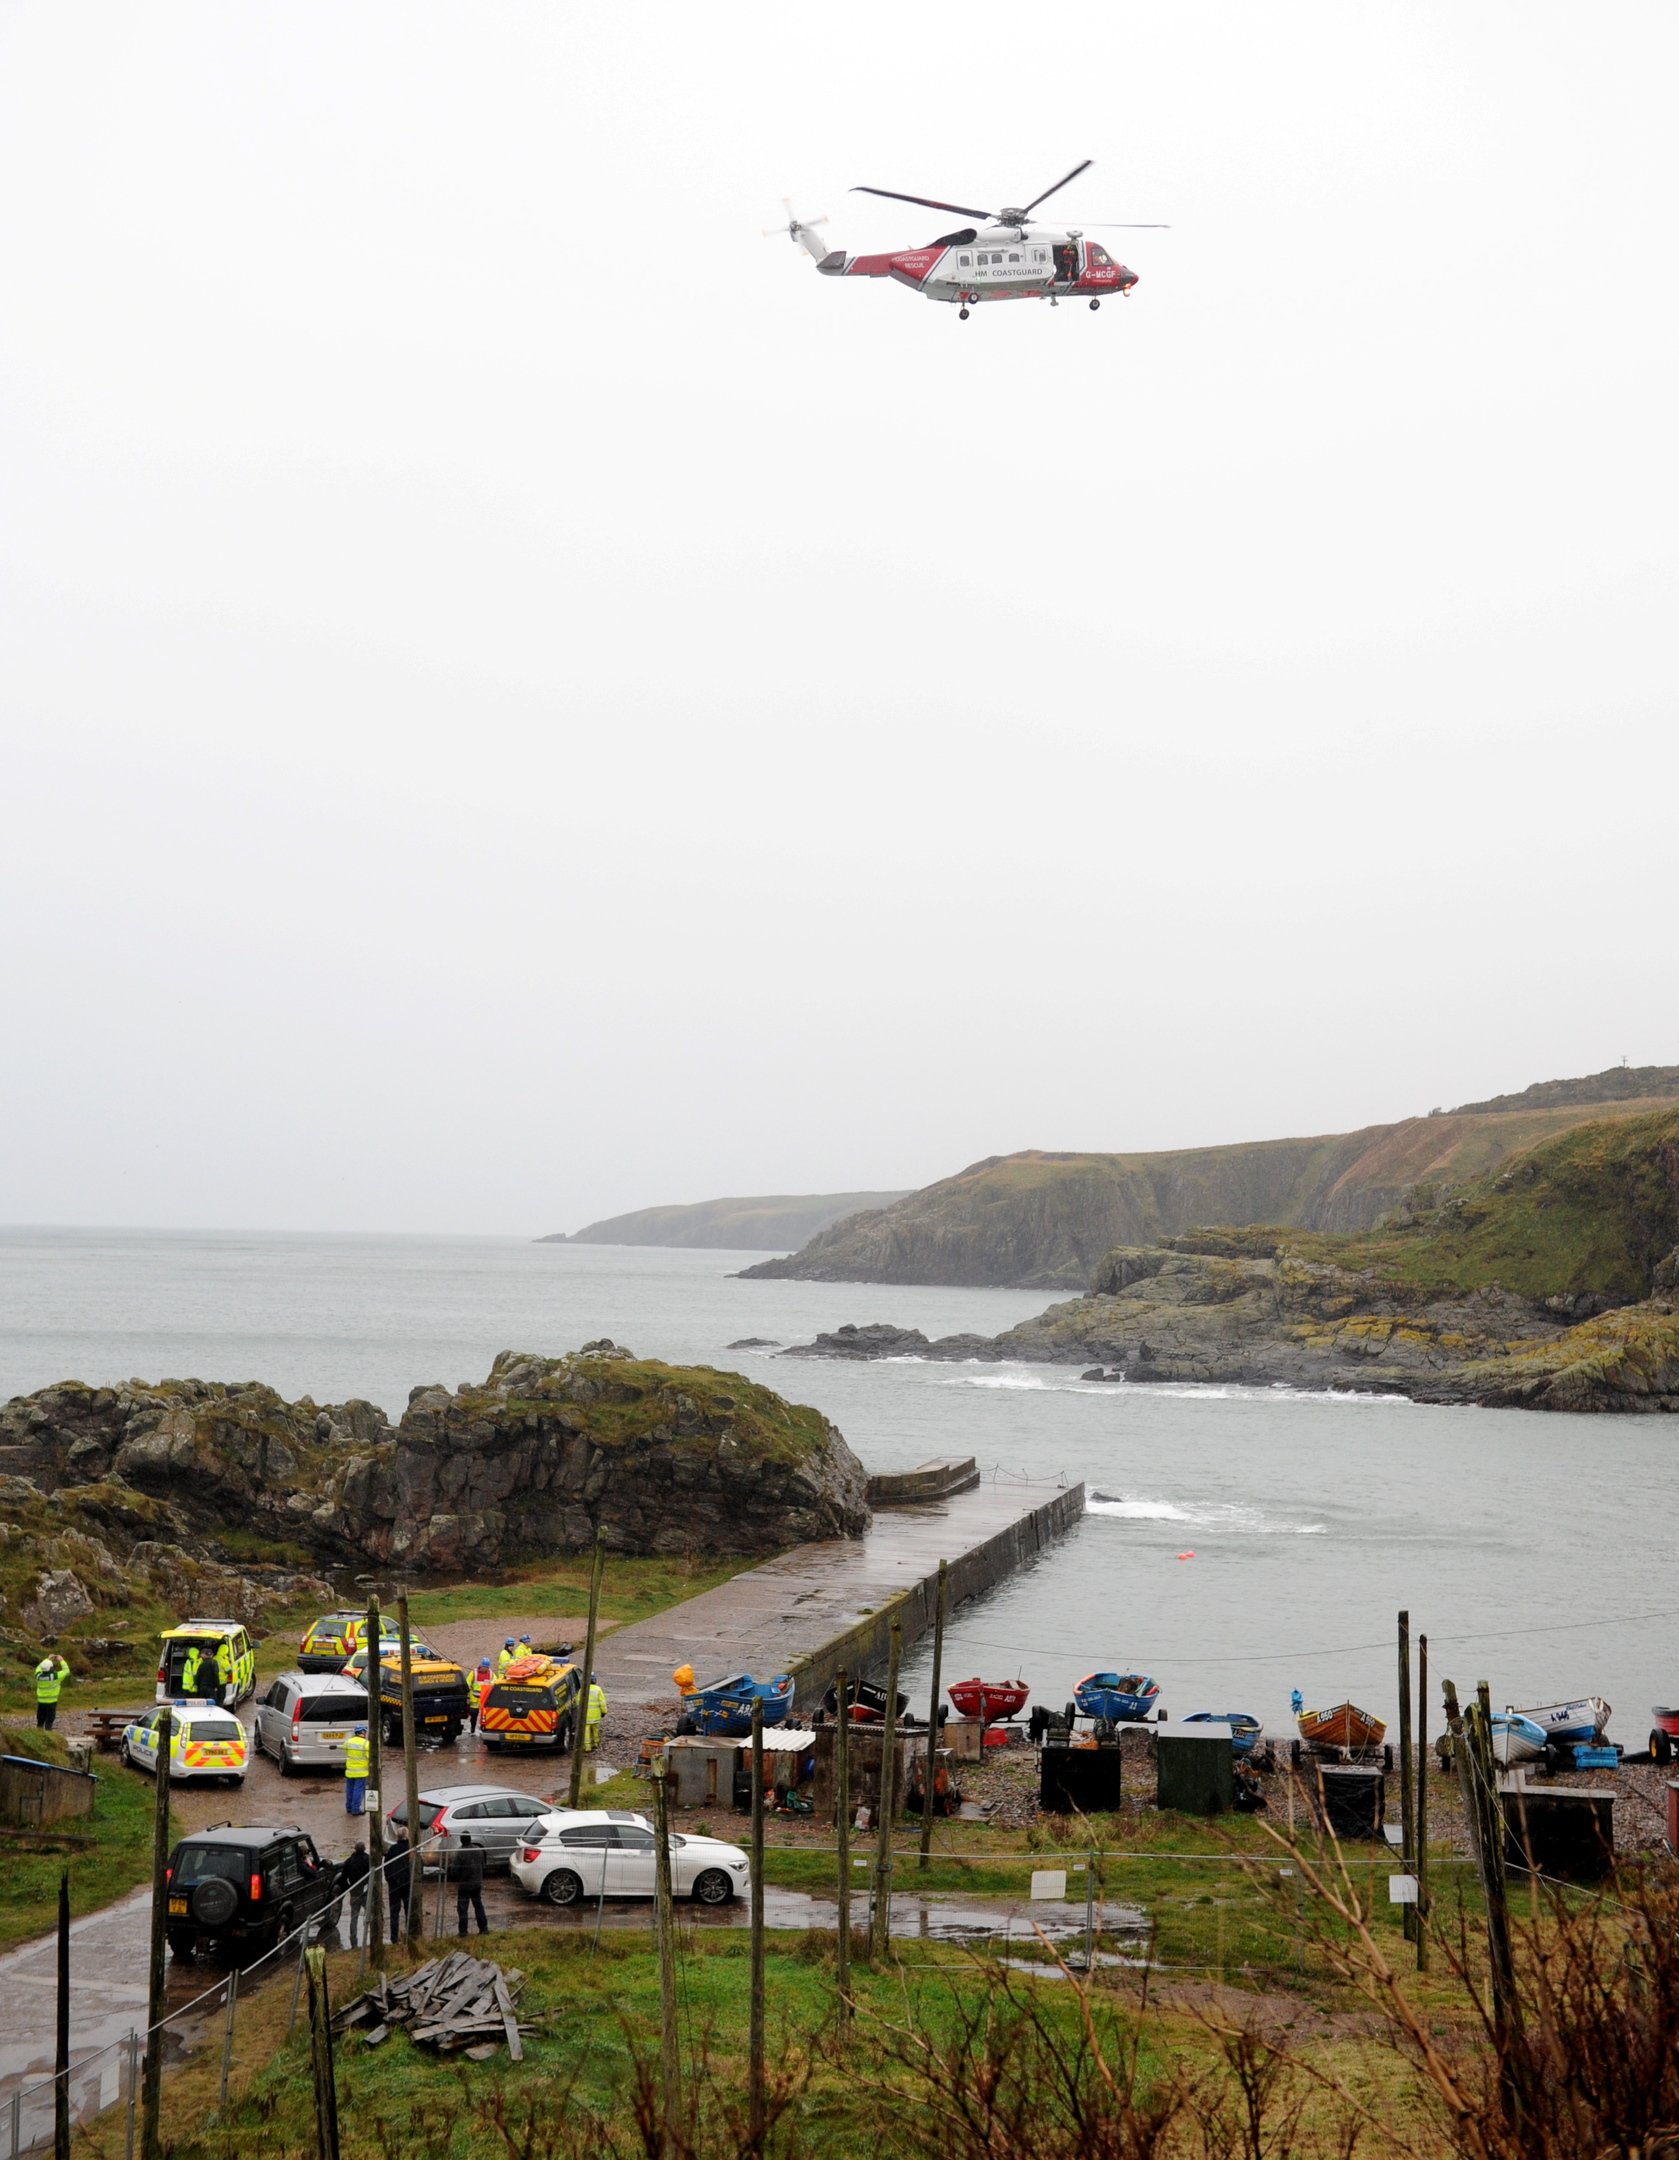 A climber was rescued after  falling from a cliff at Cove Bay.